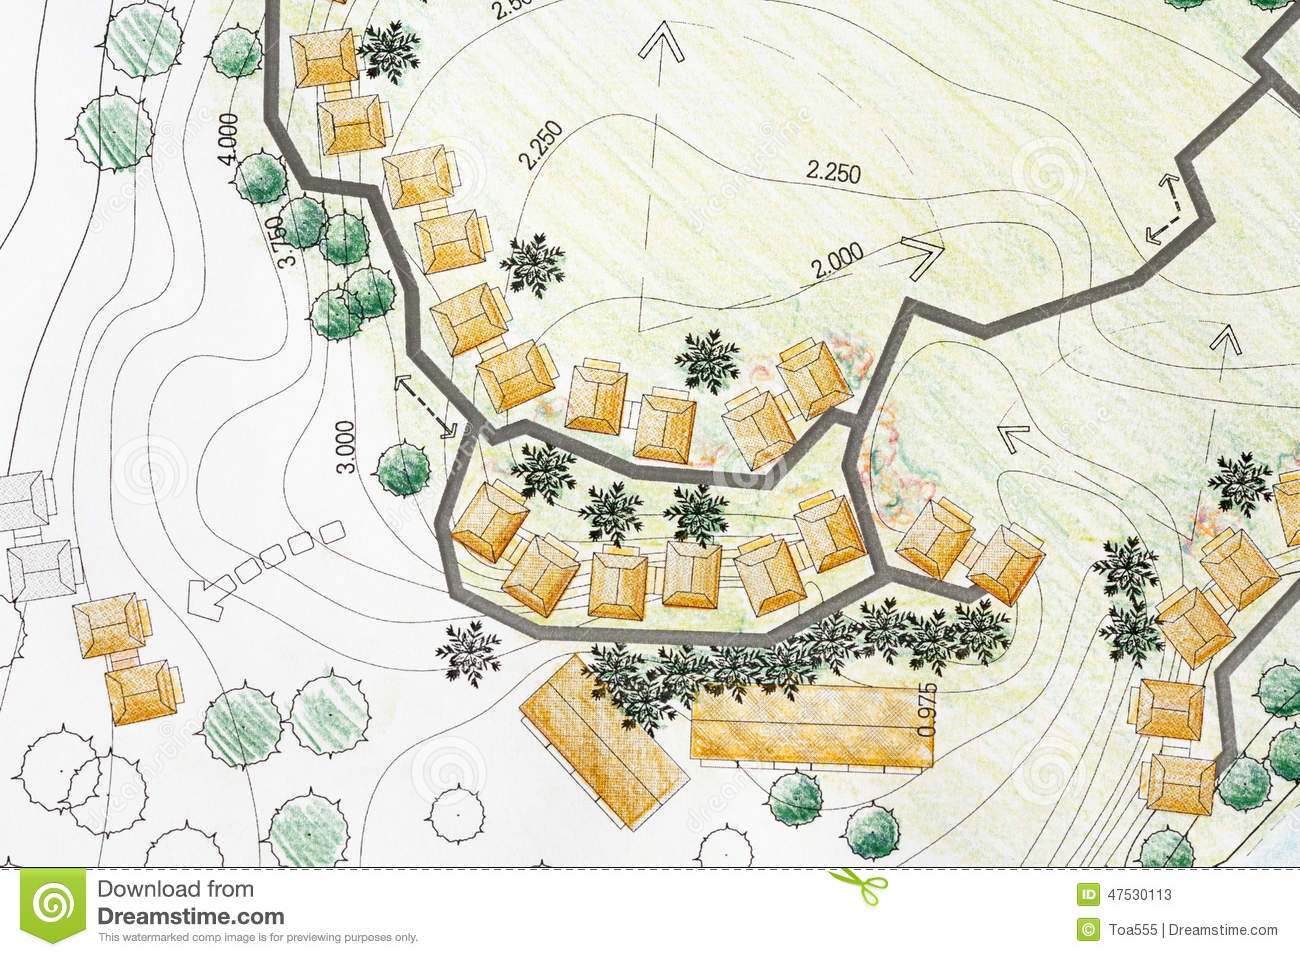 Landscape architect designing on site analysis plan stock for Site plan with landscape